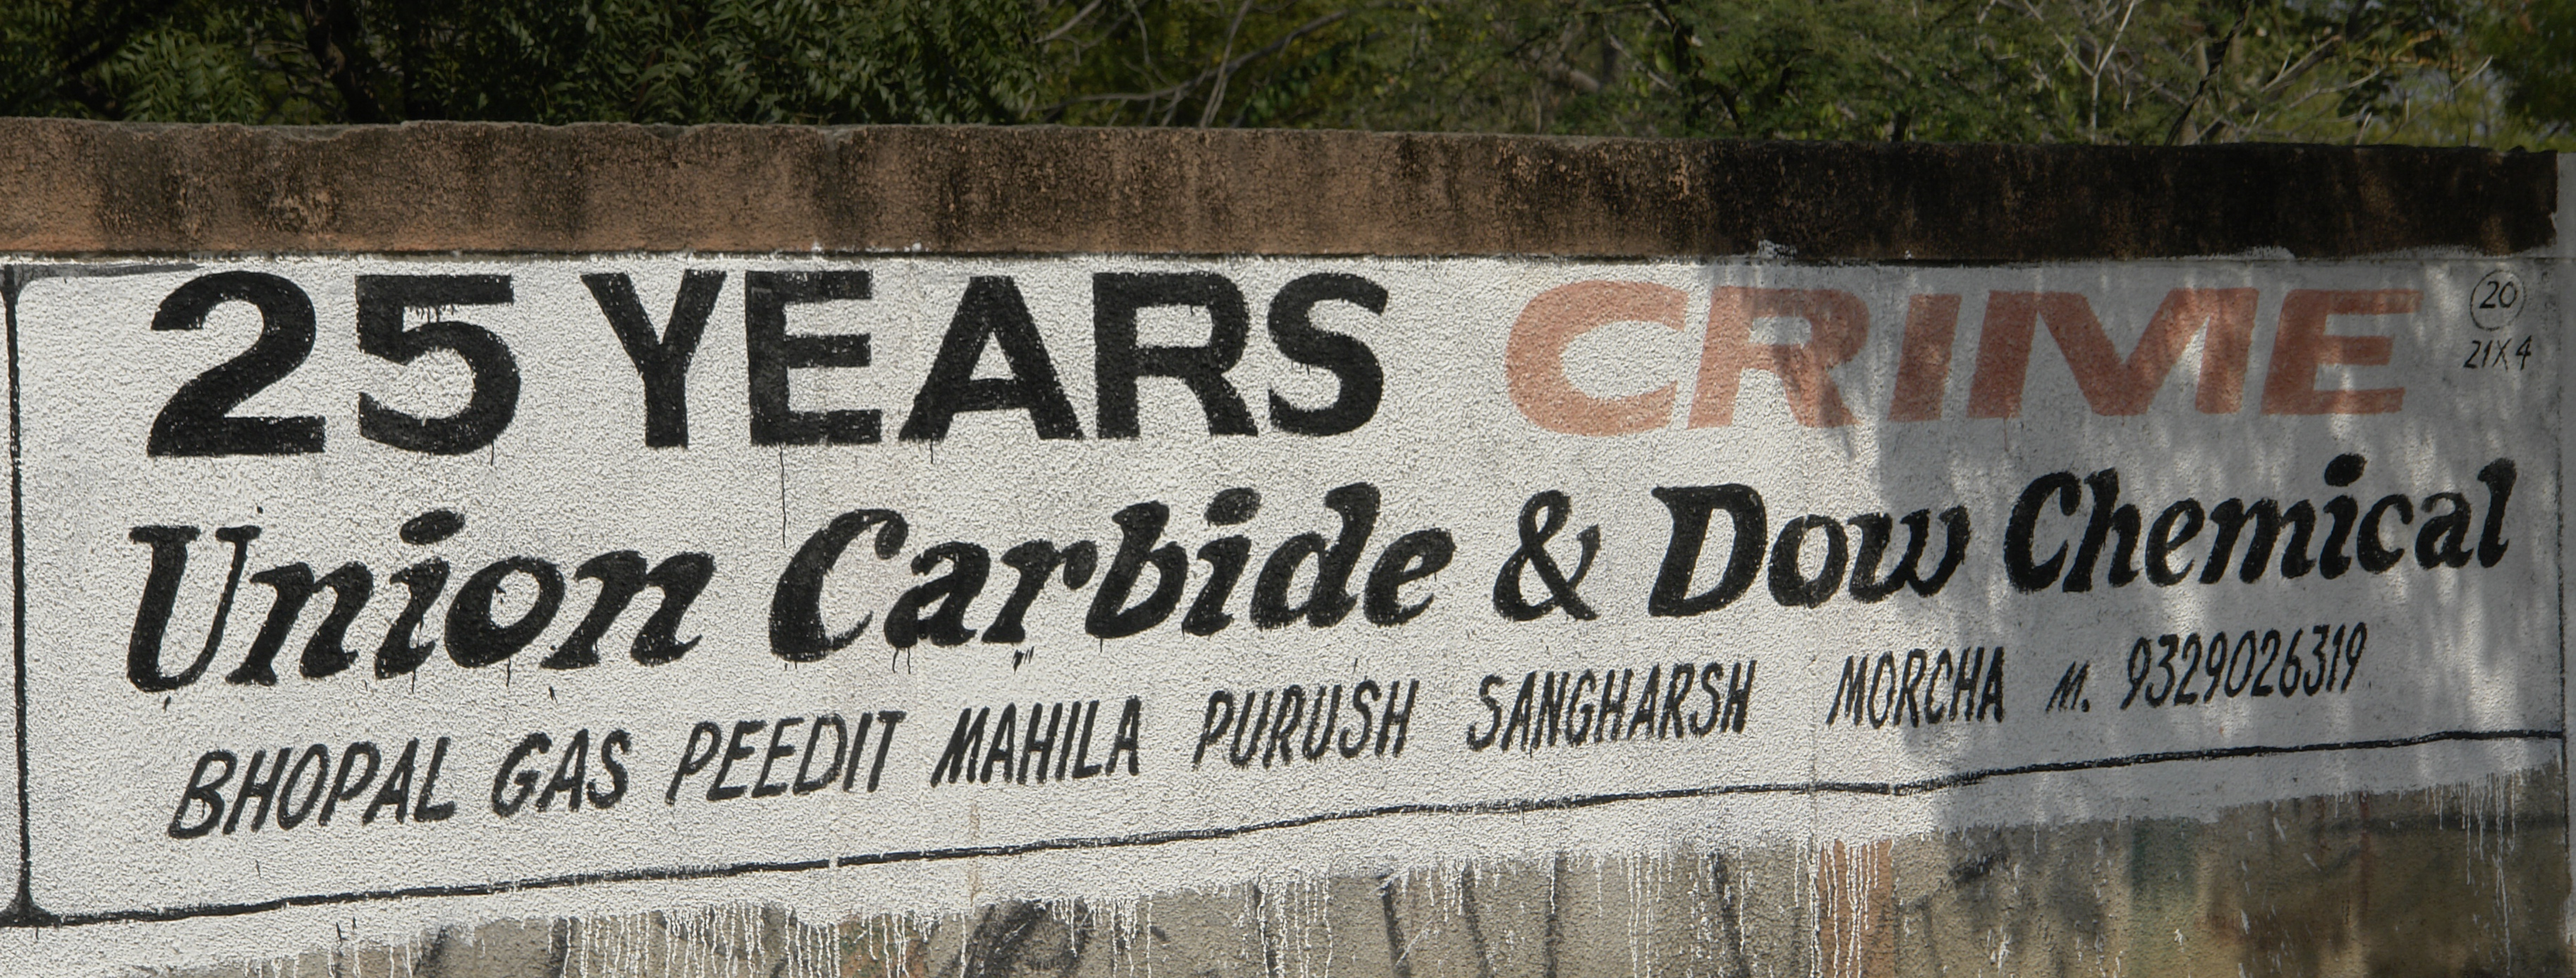 union carbide In the early hours of december 3,1984, methylisocyanate (mic) gas leaked from  a plant owned, managed and operated by union carbide india limited (ucil).